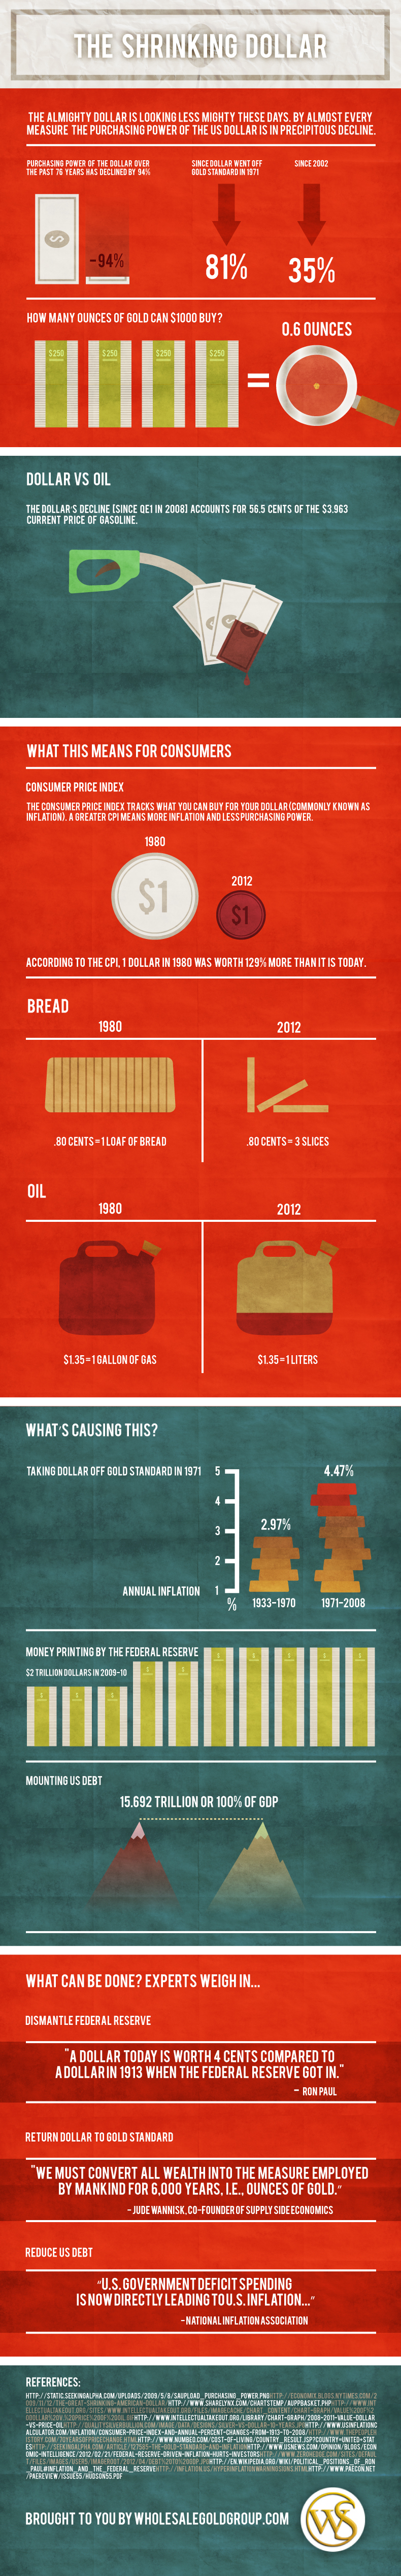 the-shrinking-dollar-infographic_504cb67258cce